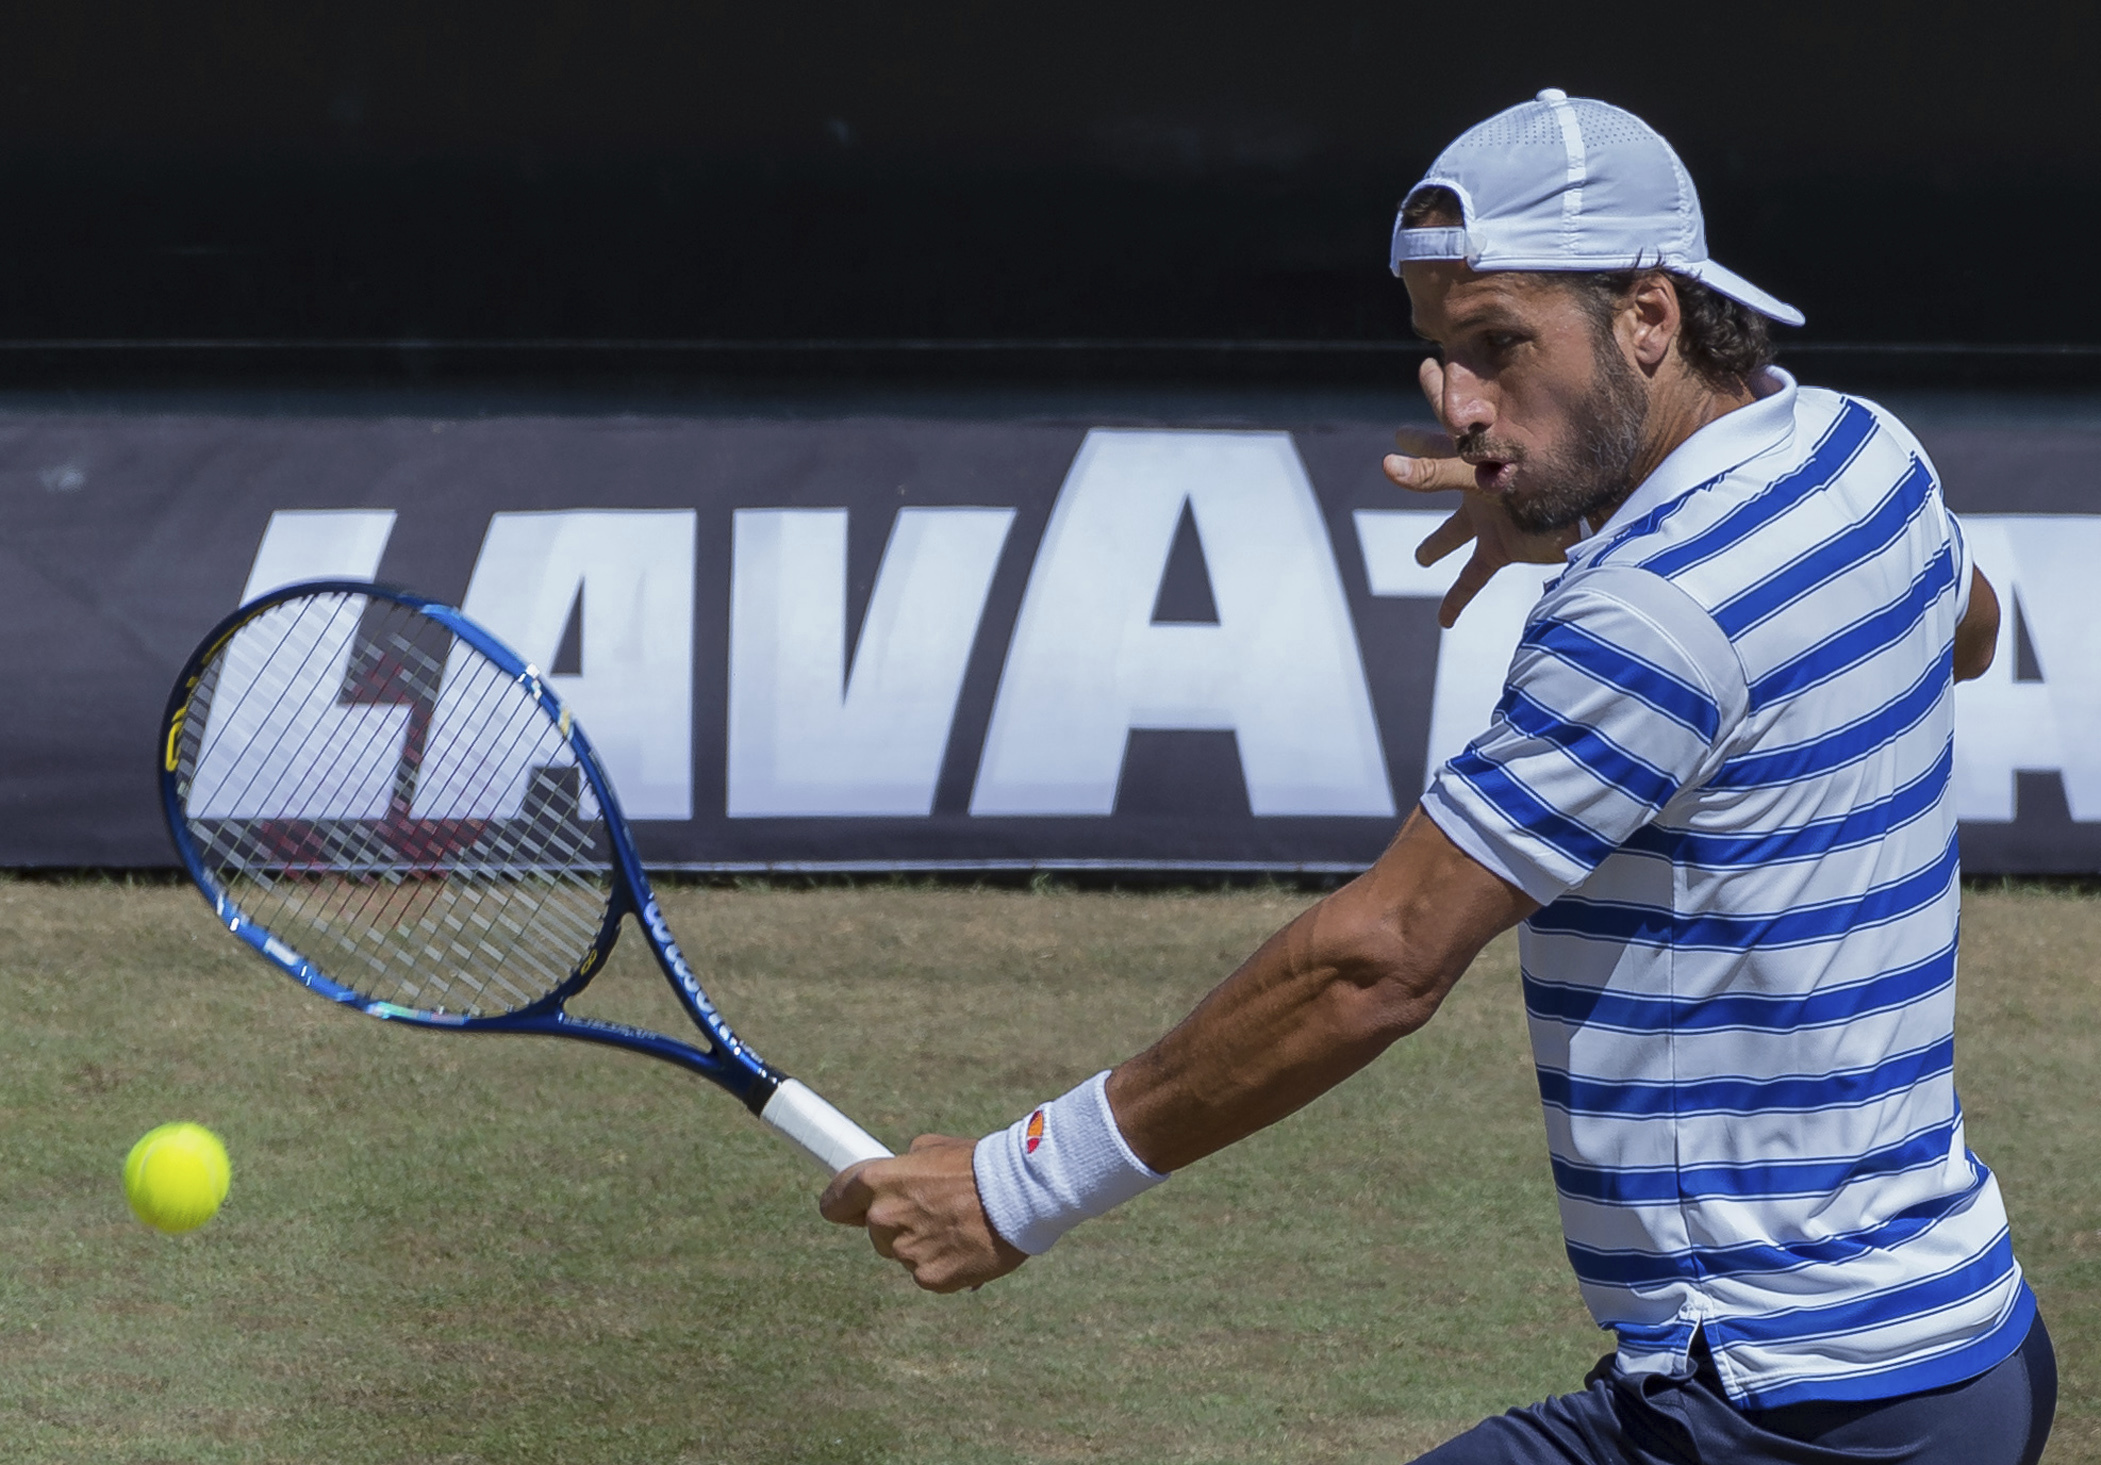 Spain's Feliciano Lopez returns the ball to Czech Republic's Tomas Berdych during their quarterfinal match at the Mercedes Cup tennis tournament in Stuttgart, Germany Friday, June 16, 2017. (Daniel Maurer/dpa via AP)